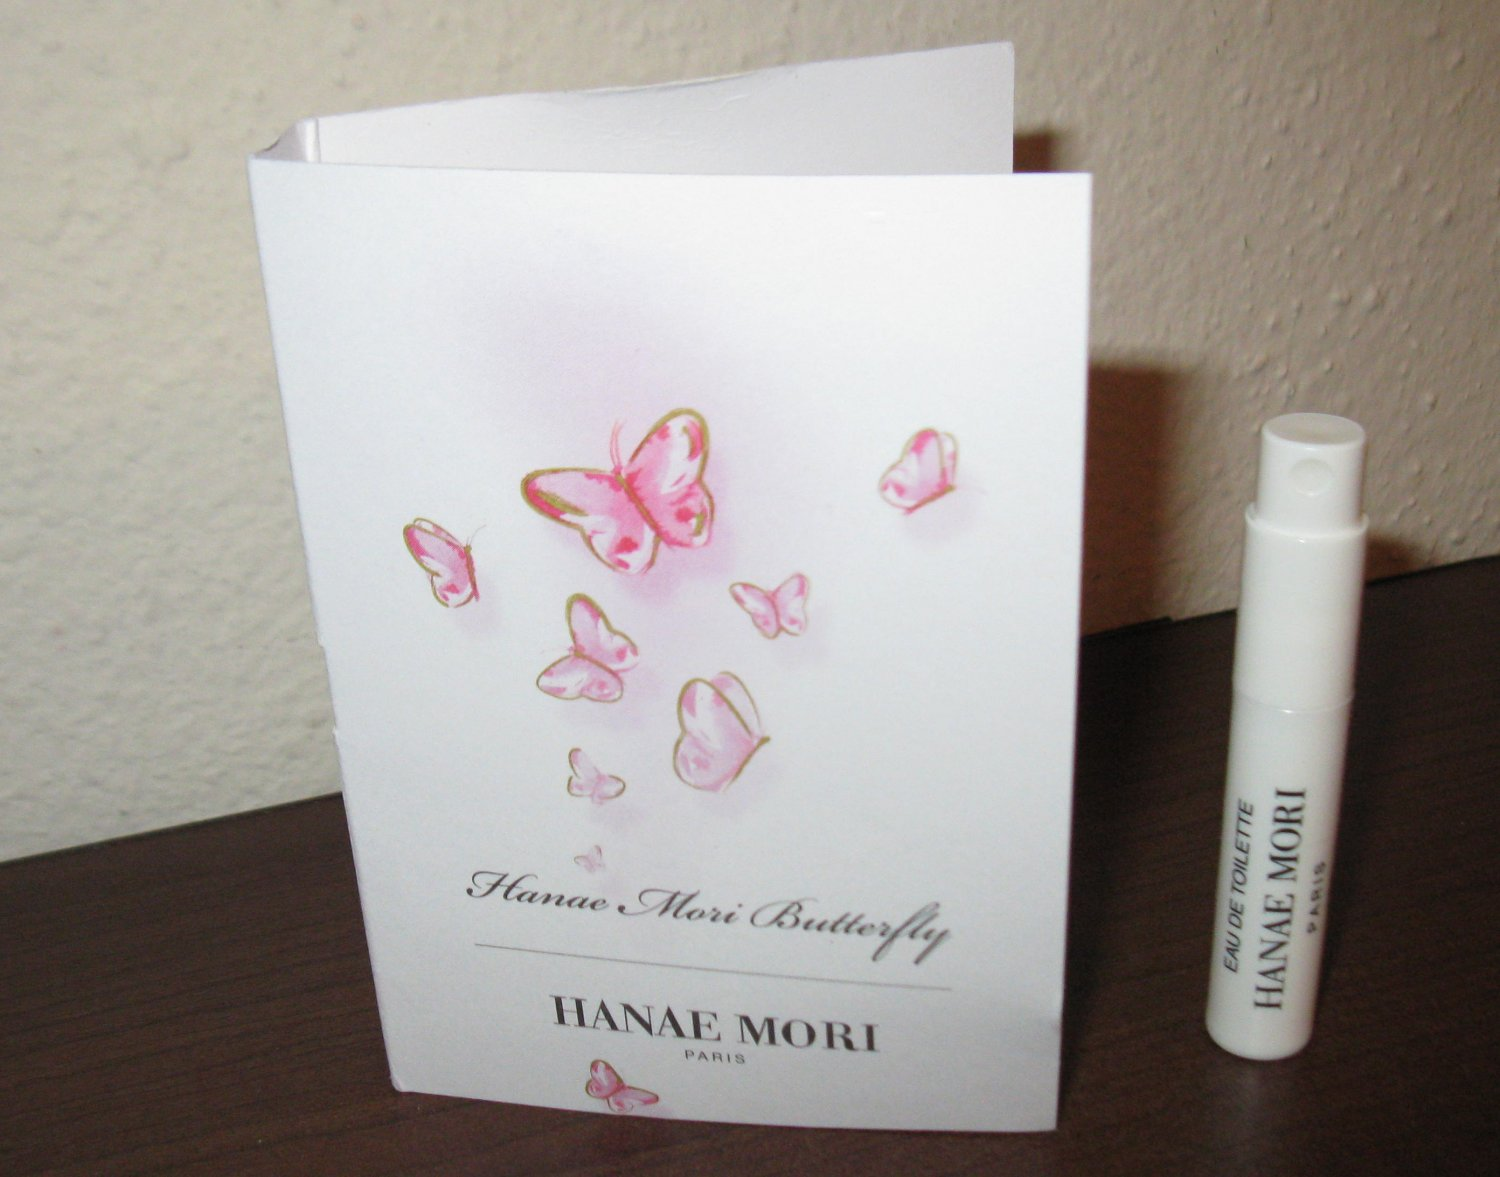 Hanae Mori Butterfly Eau de Toilette Deluxe Sample .04 oz/1.2ml New #K60